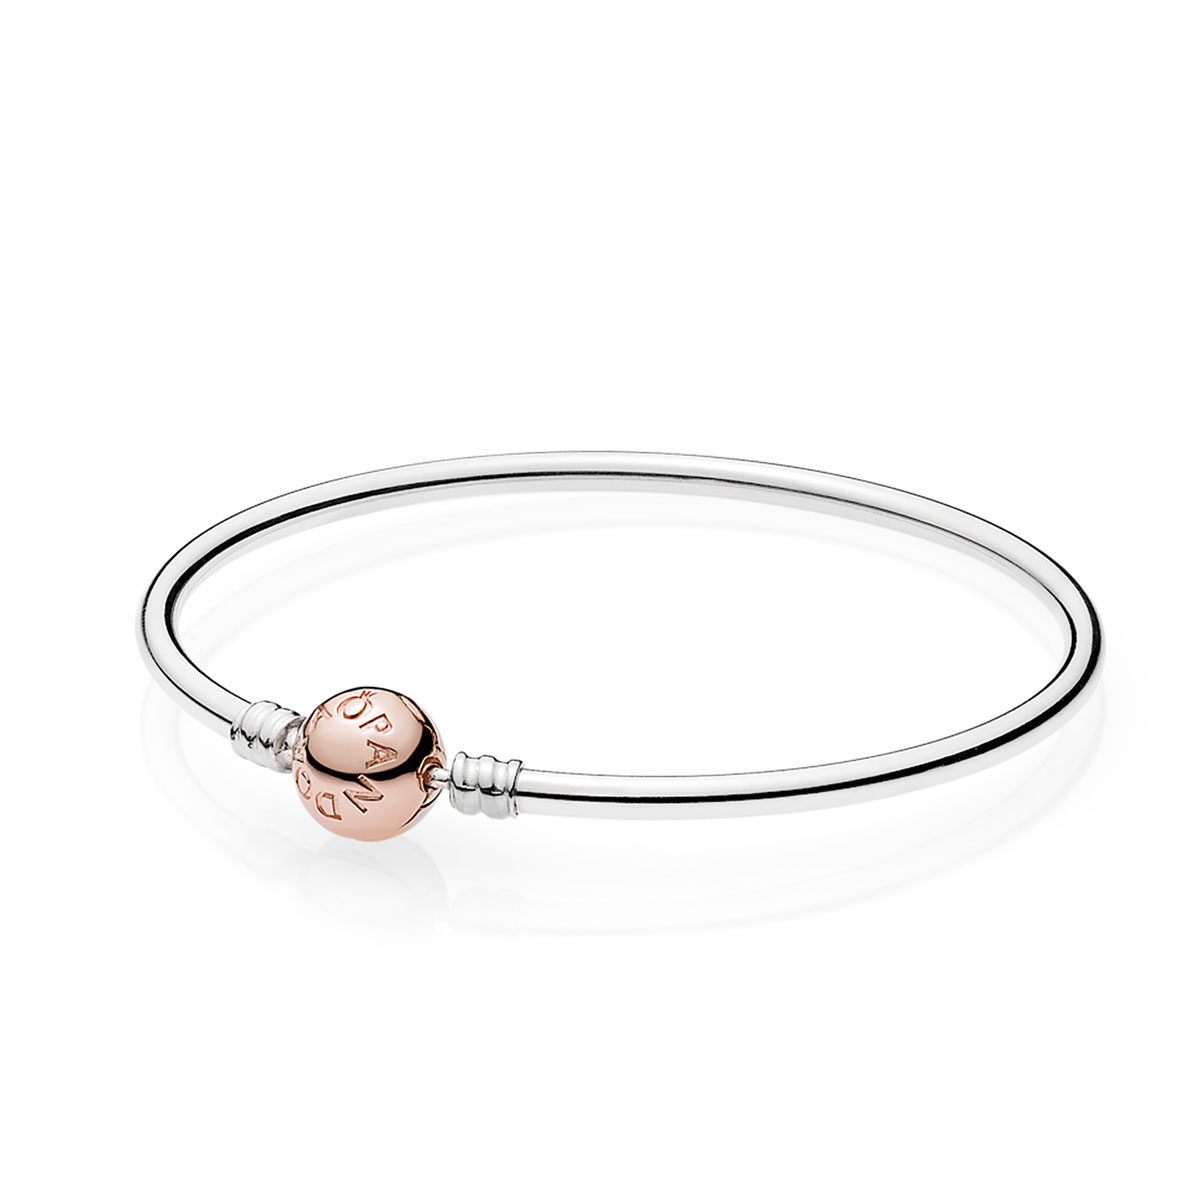 stackable the moonflower bangles rose band gold rope ring bangle skinny white studio products bracelet